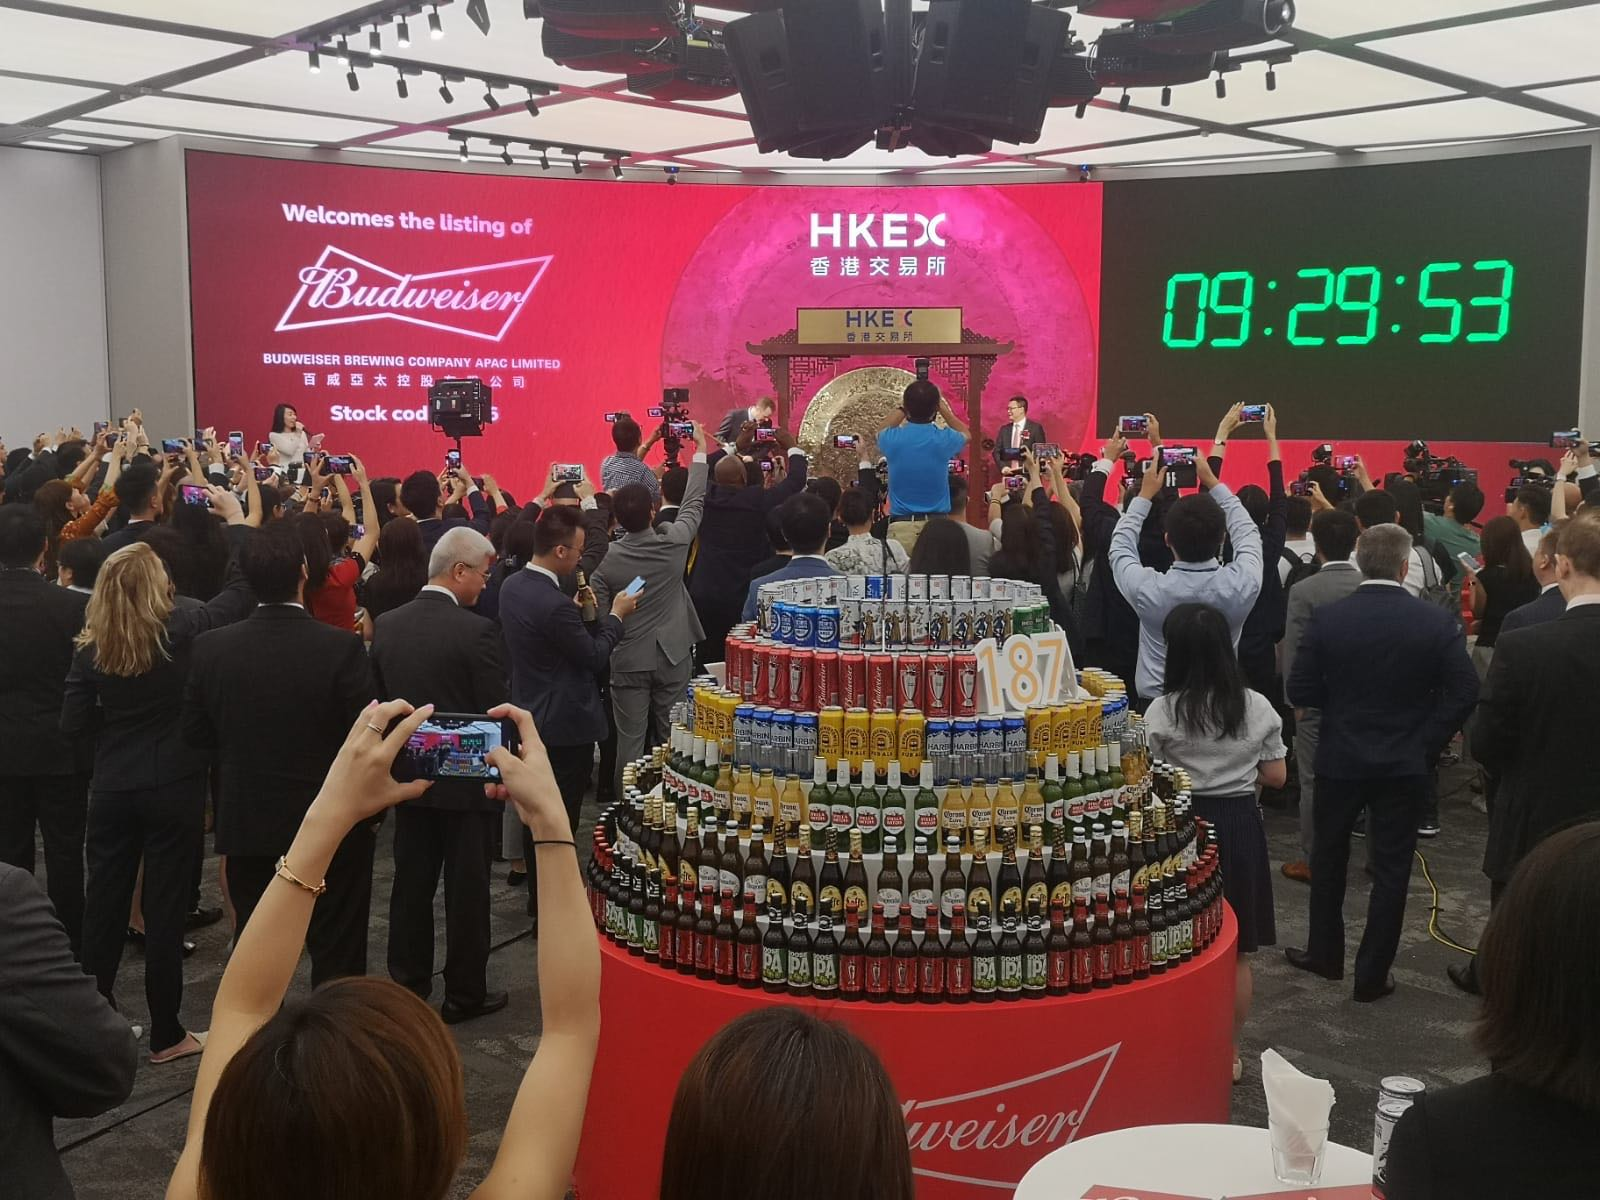 Budweiser Apac Surges About 4% In Its Ipo, The Second Biggest Debut In 2019 photo